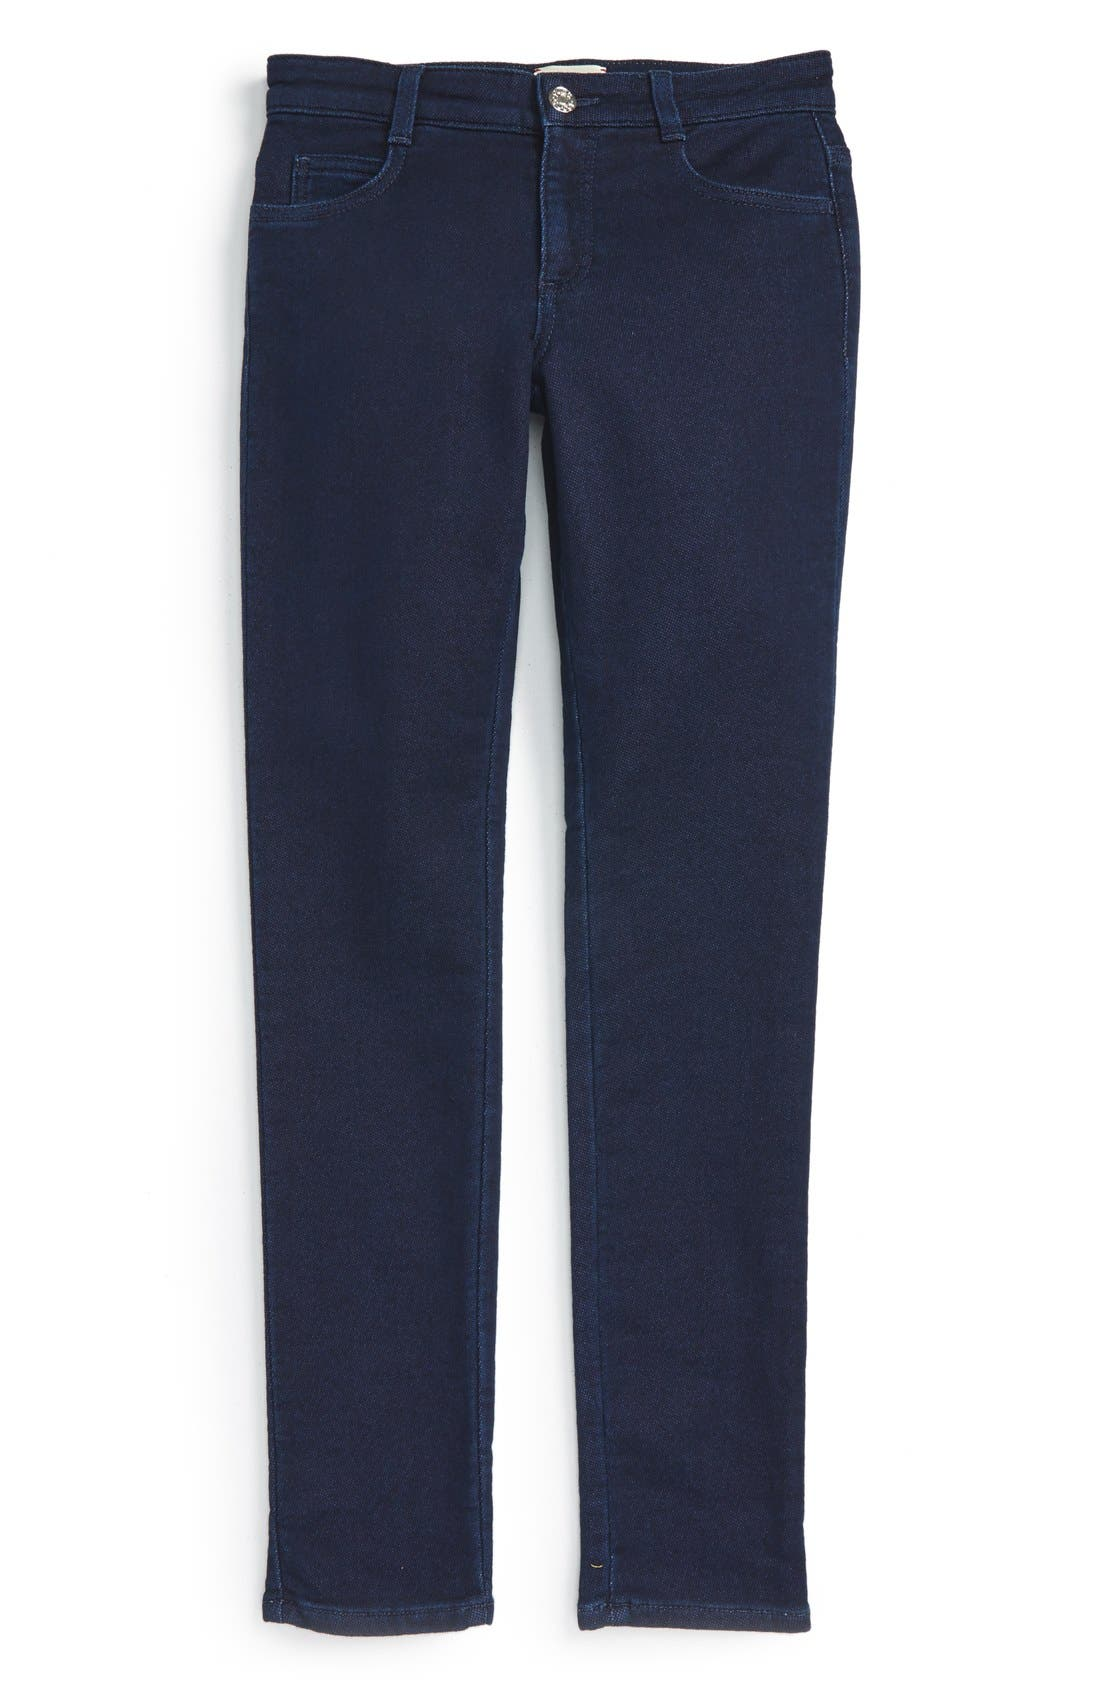 Gucci Skinny Knit Pants (Little Girls & Big Girls)